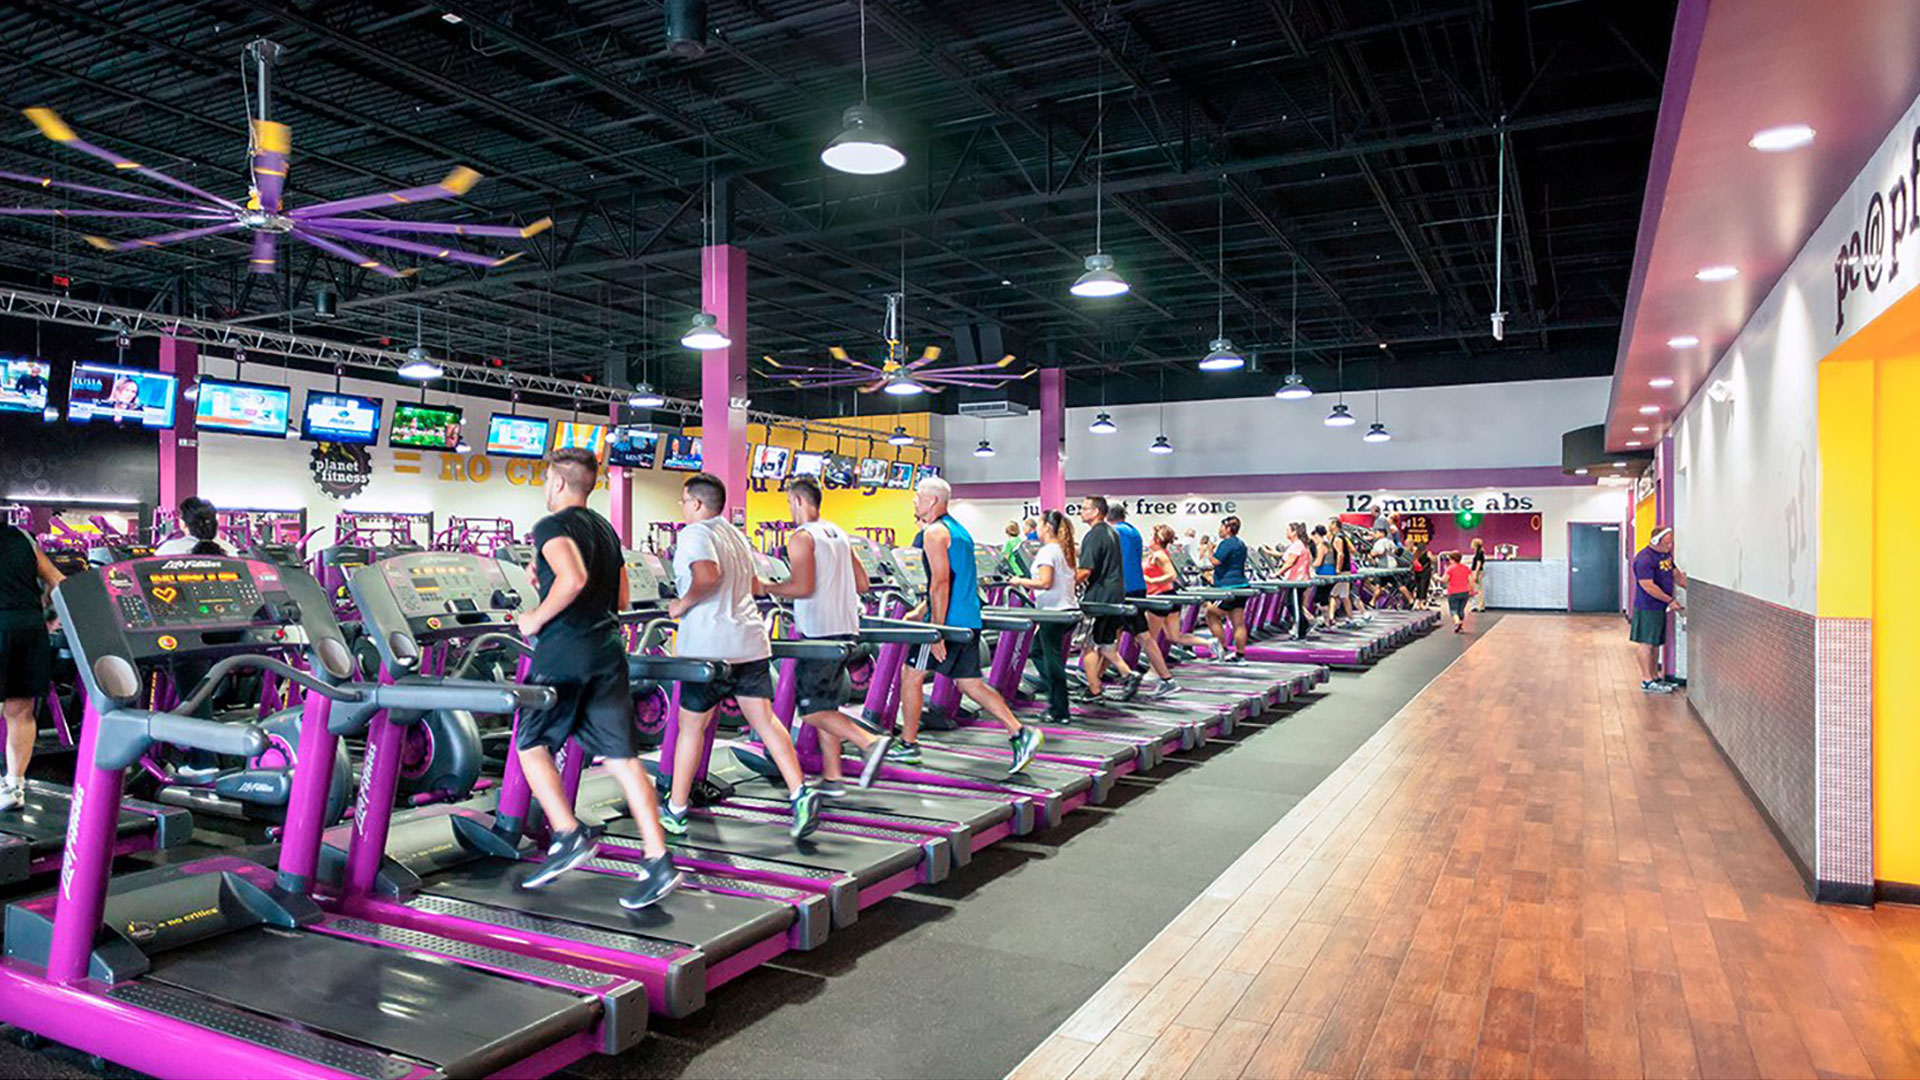 Planet-fitness-retail